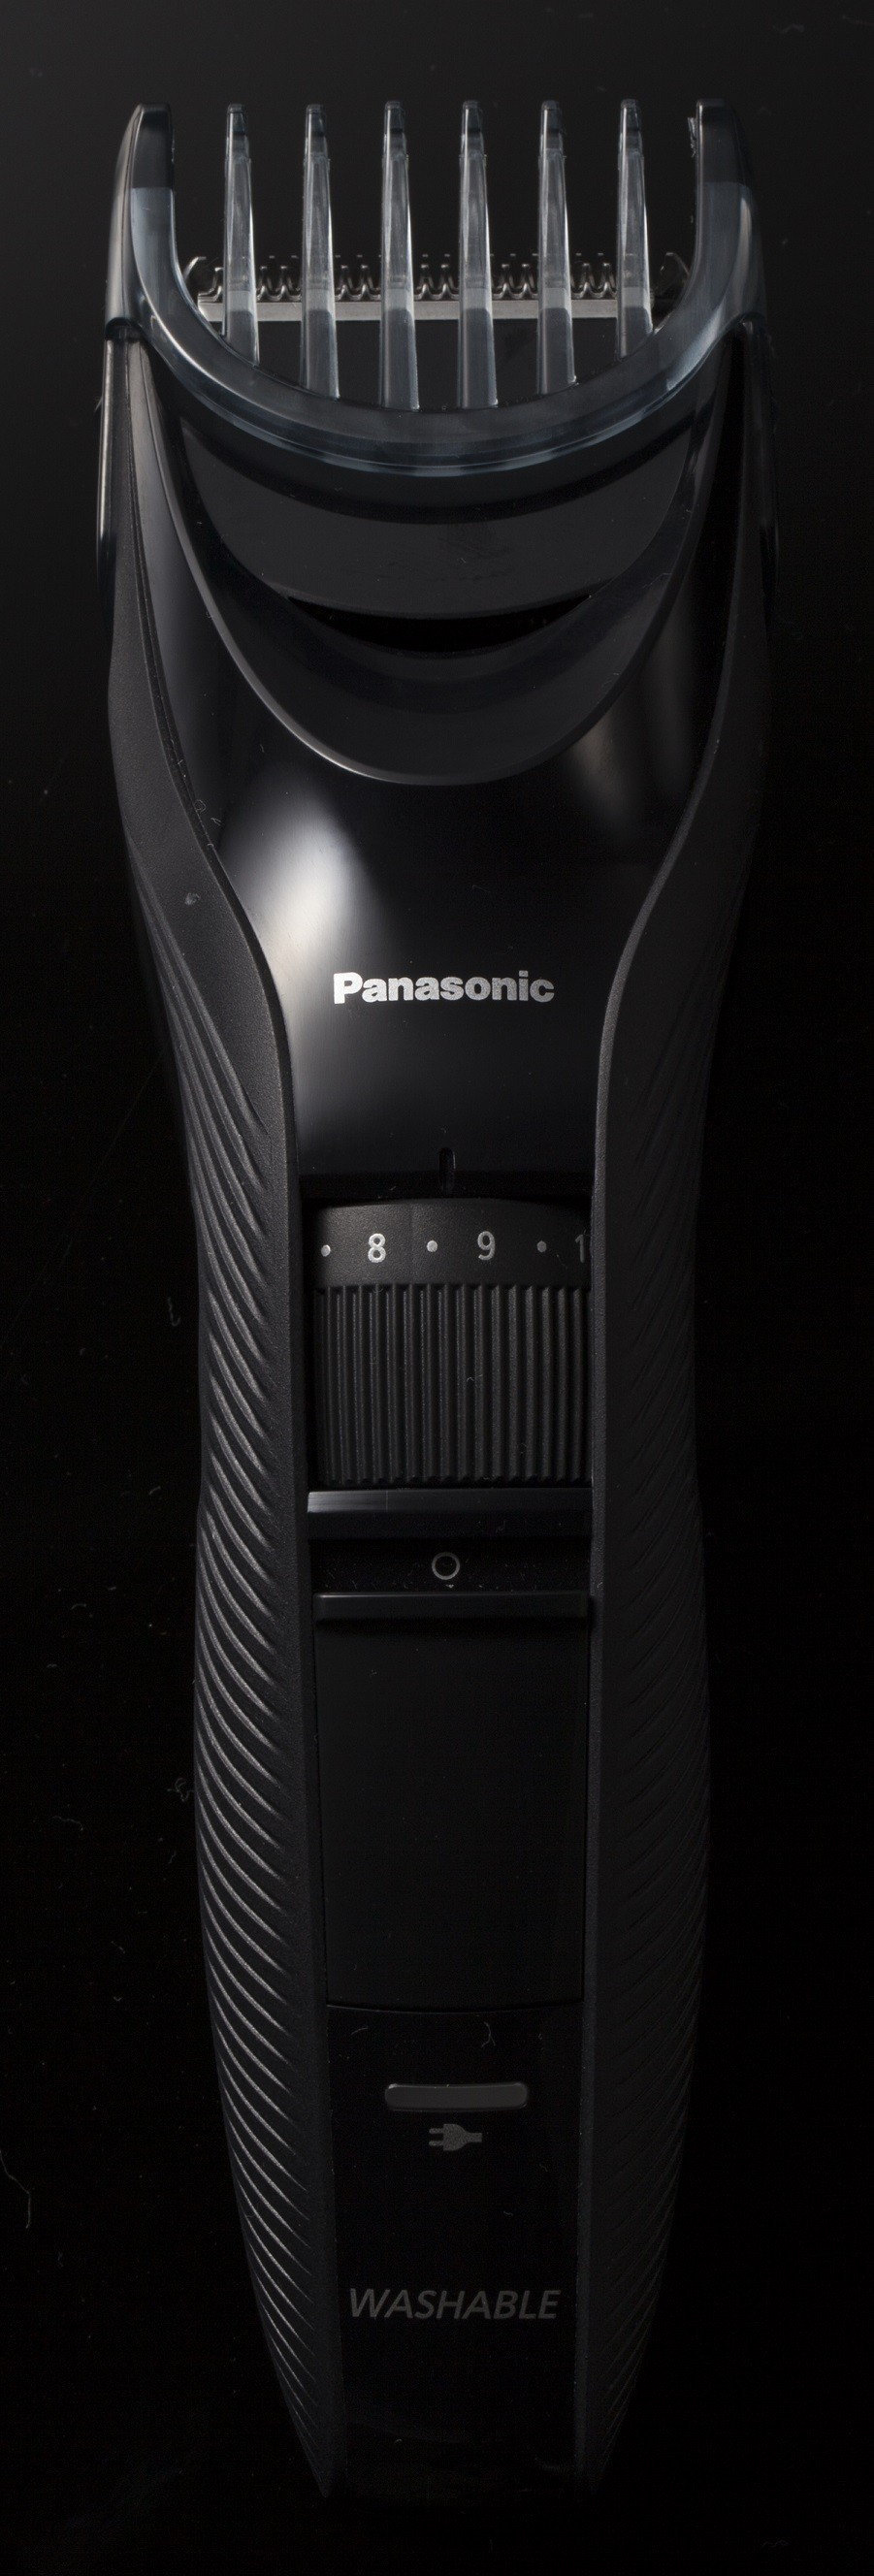 PANASONIC MENAGER - ERGC 51 K 503